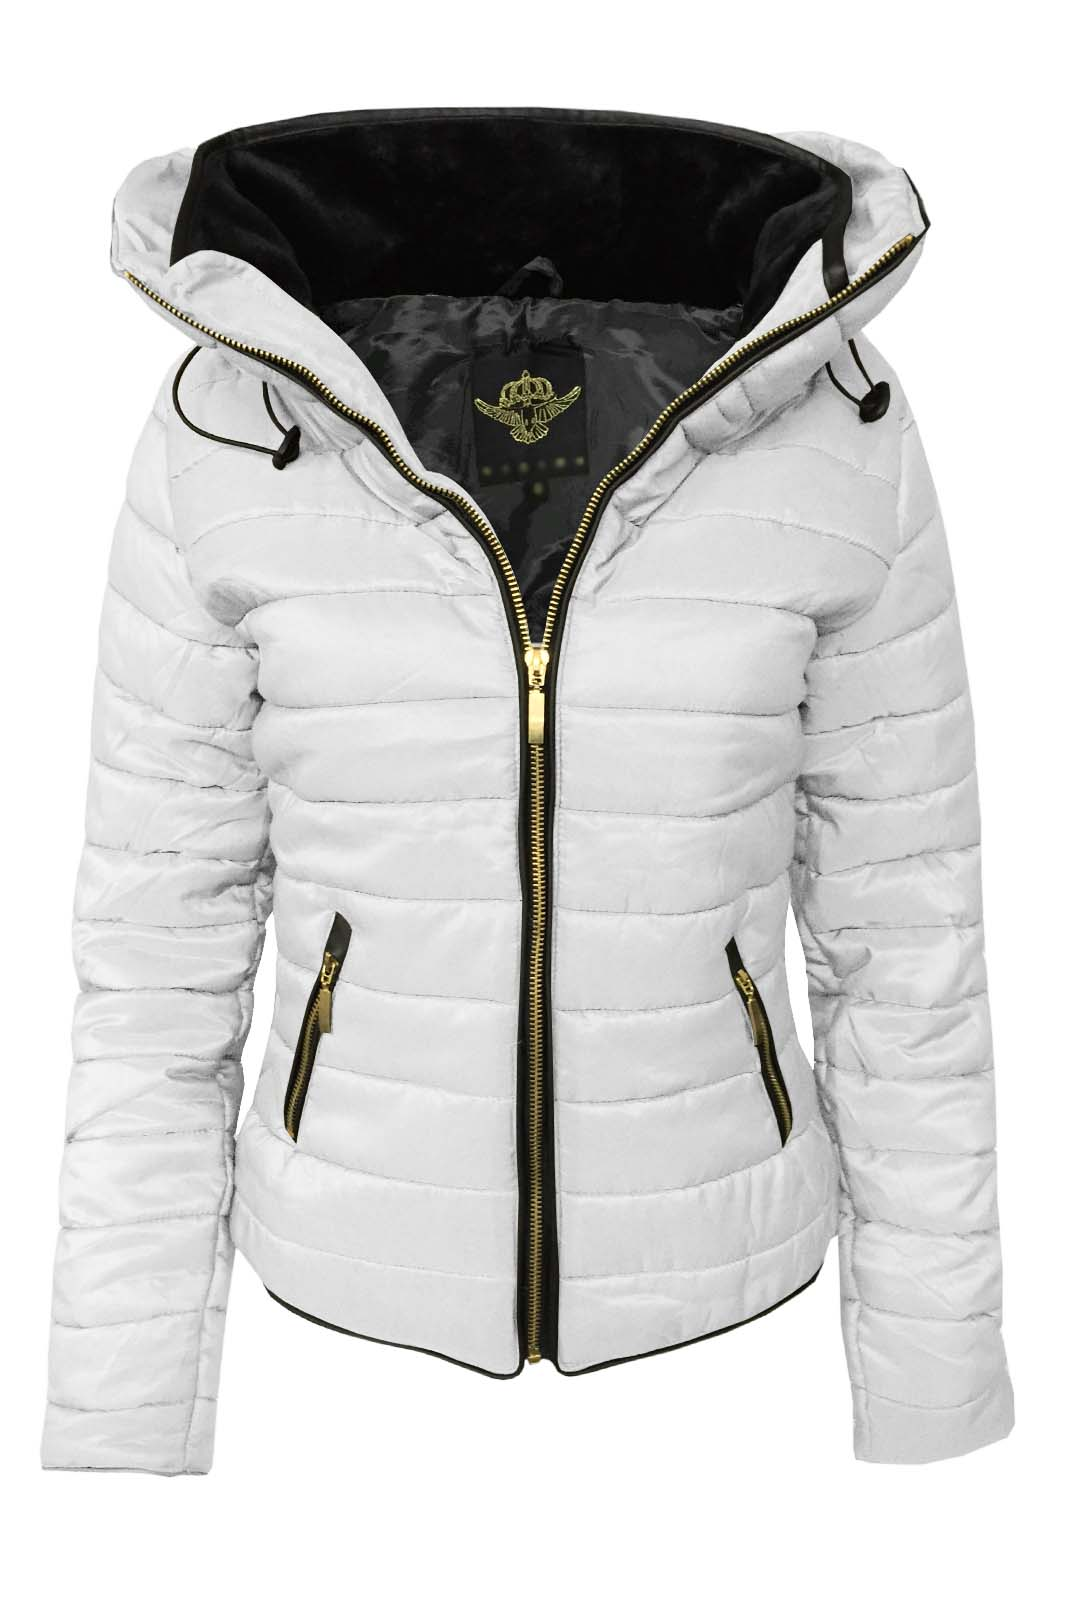 Womens black padded quilted jacket